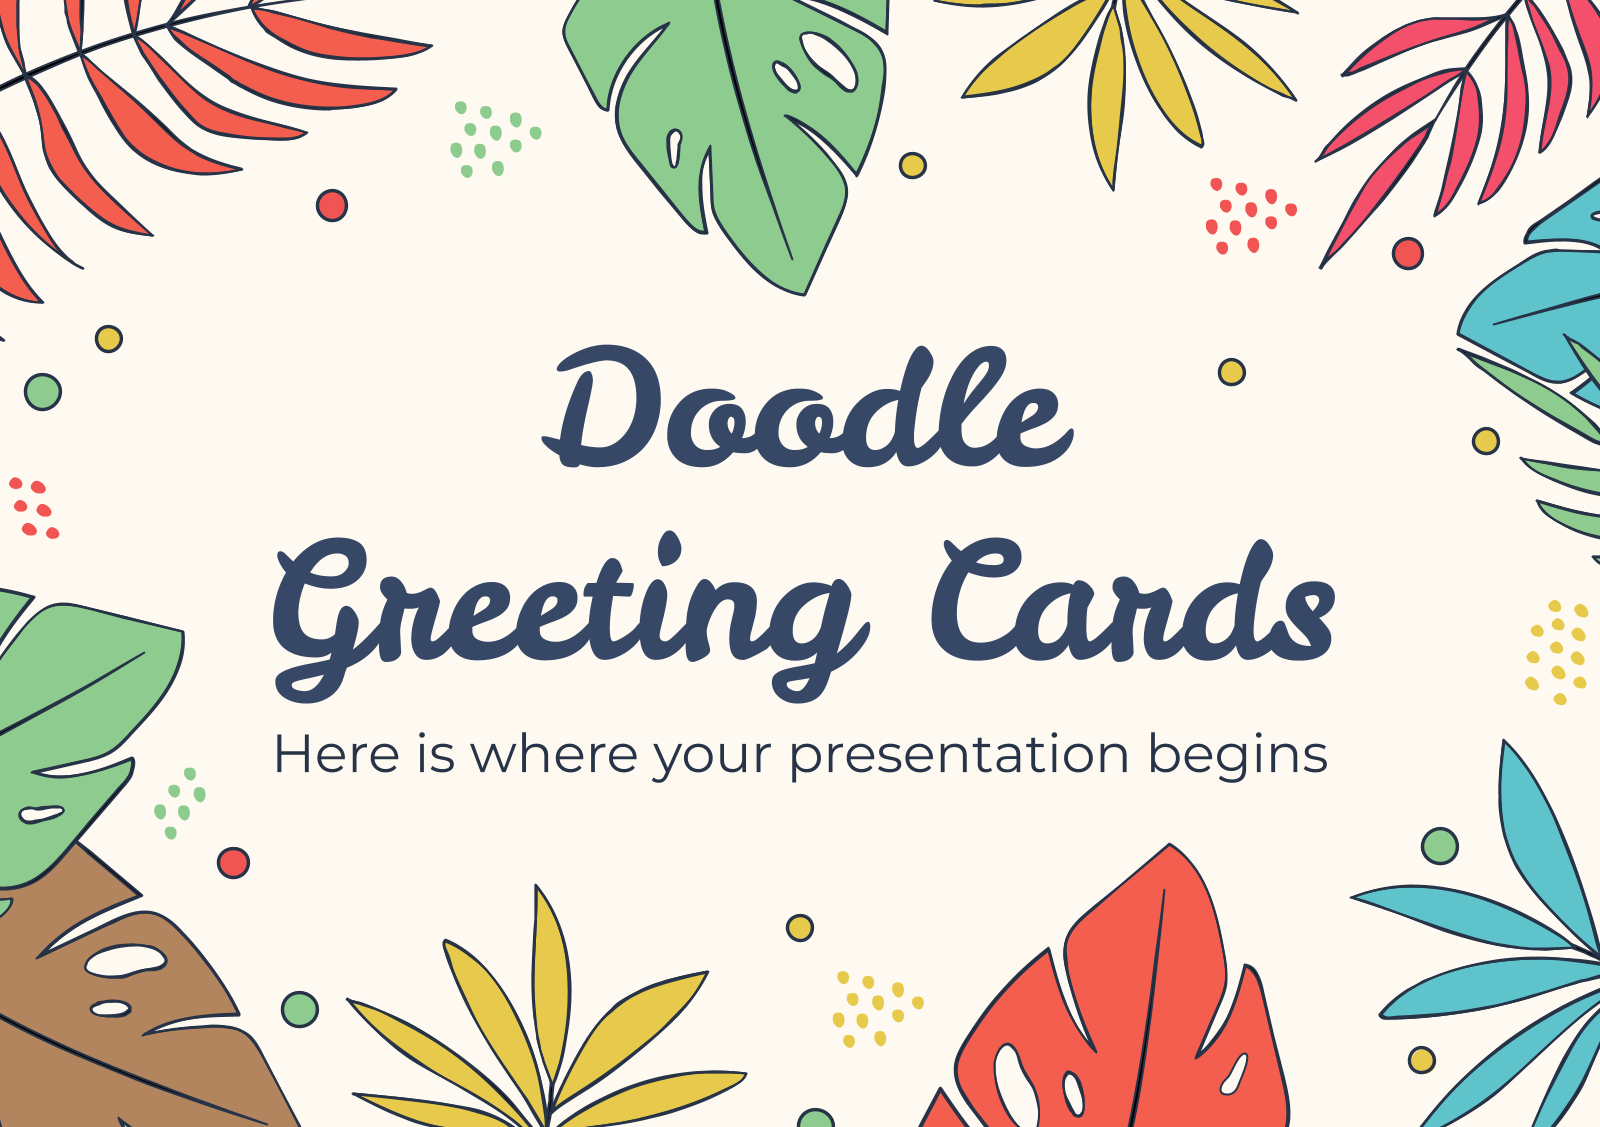 Doodle Greeting Cards presentation template